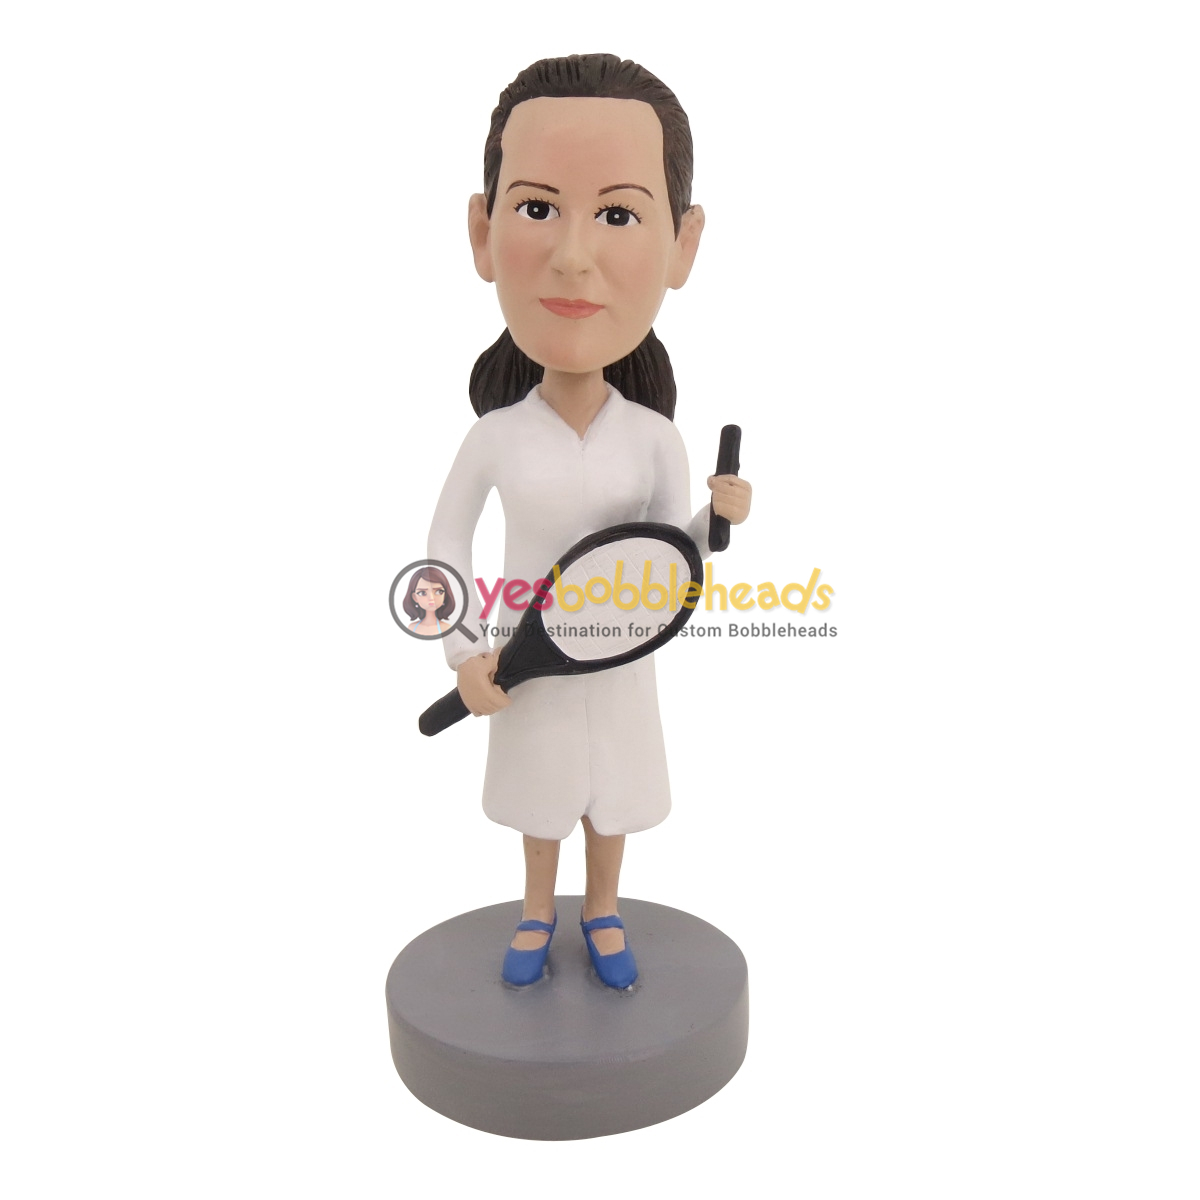 Picture of Custom Bobblehead Doll: Female Tennis Player